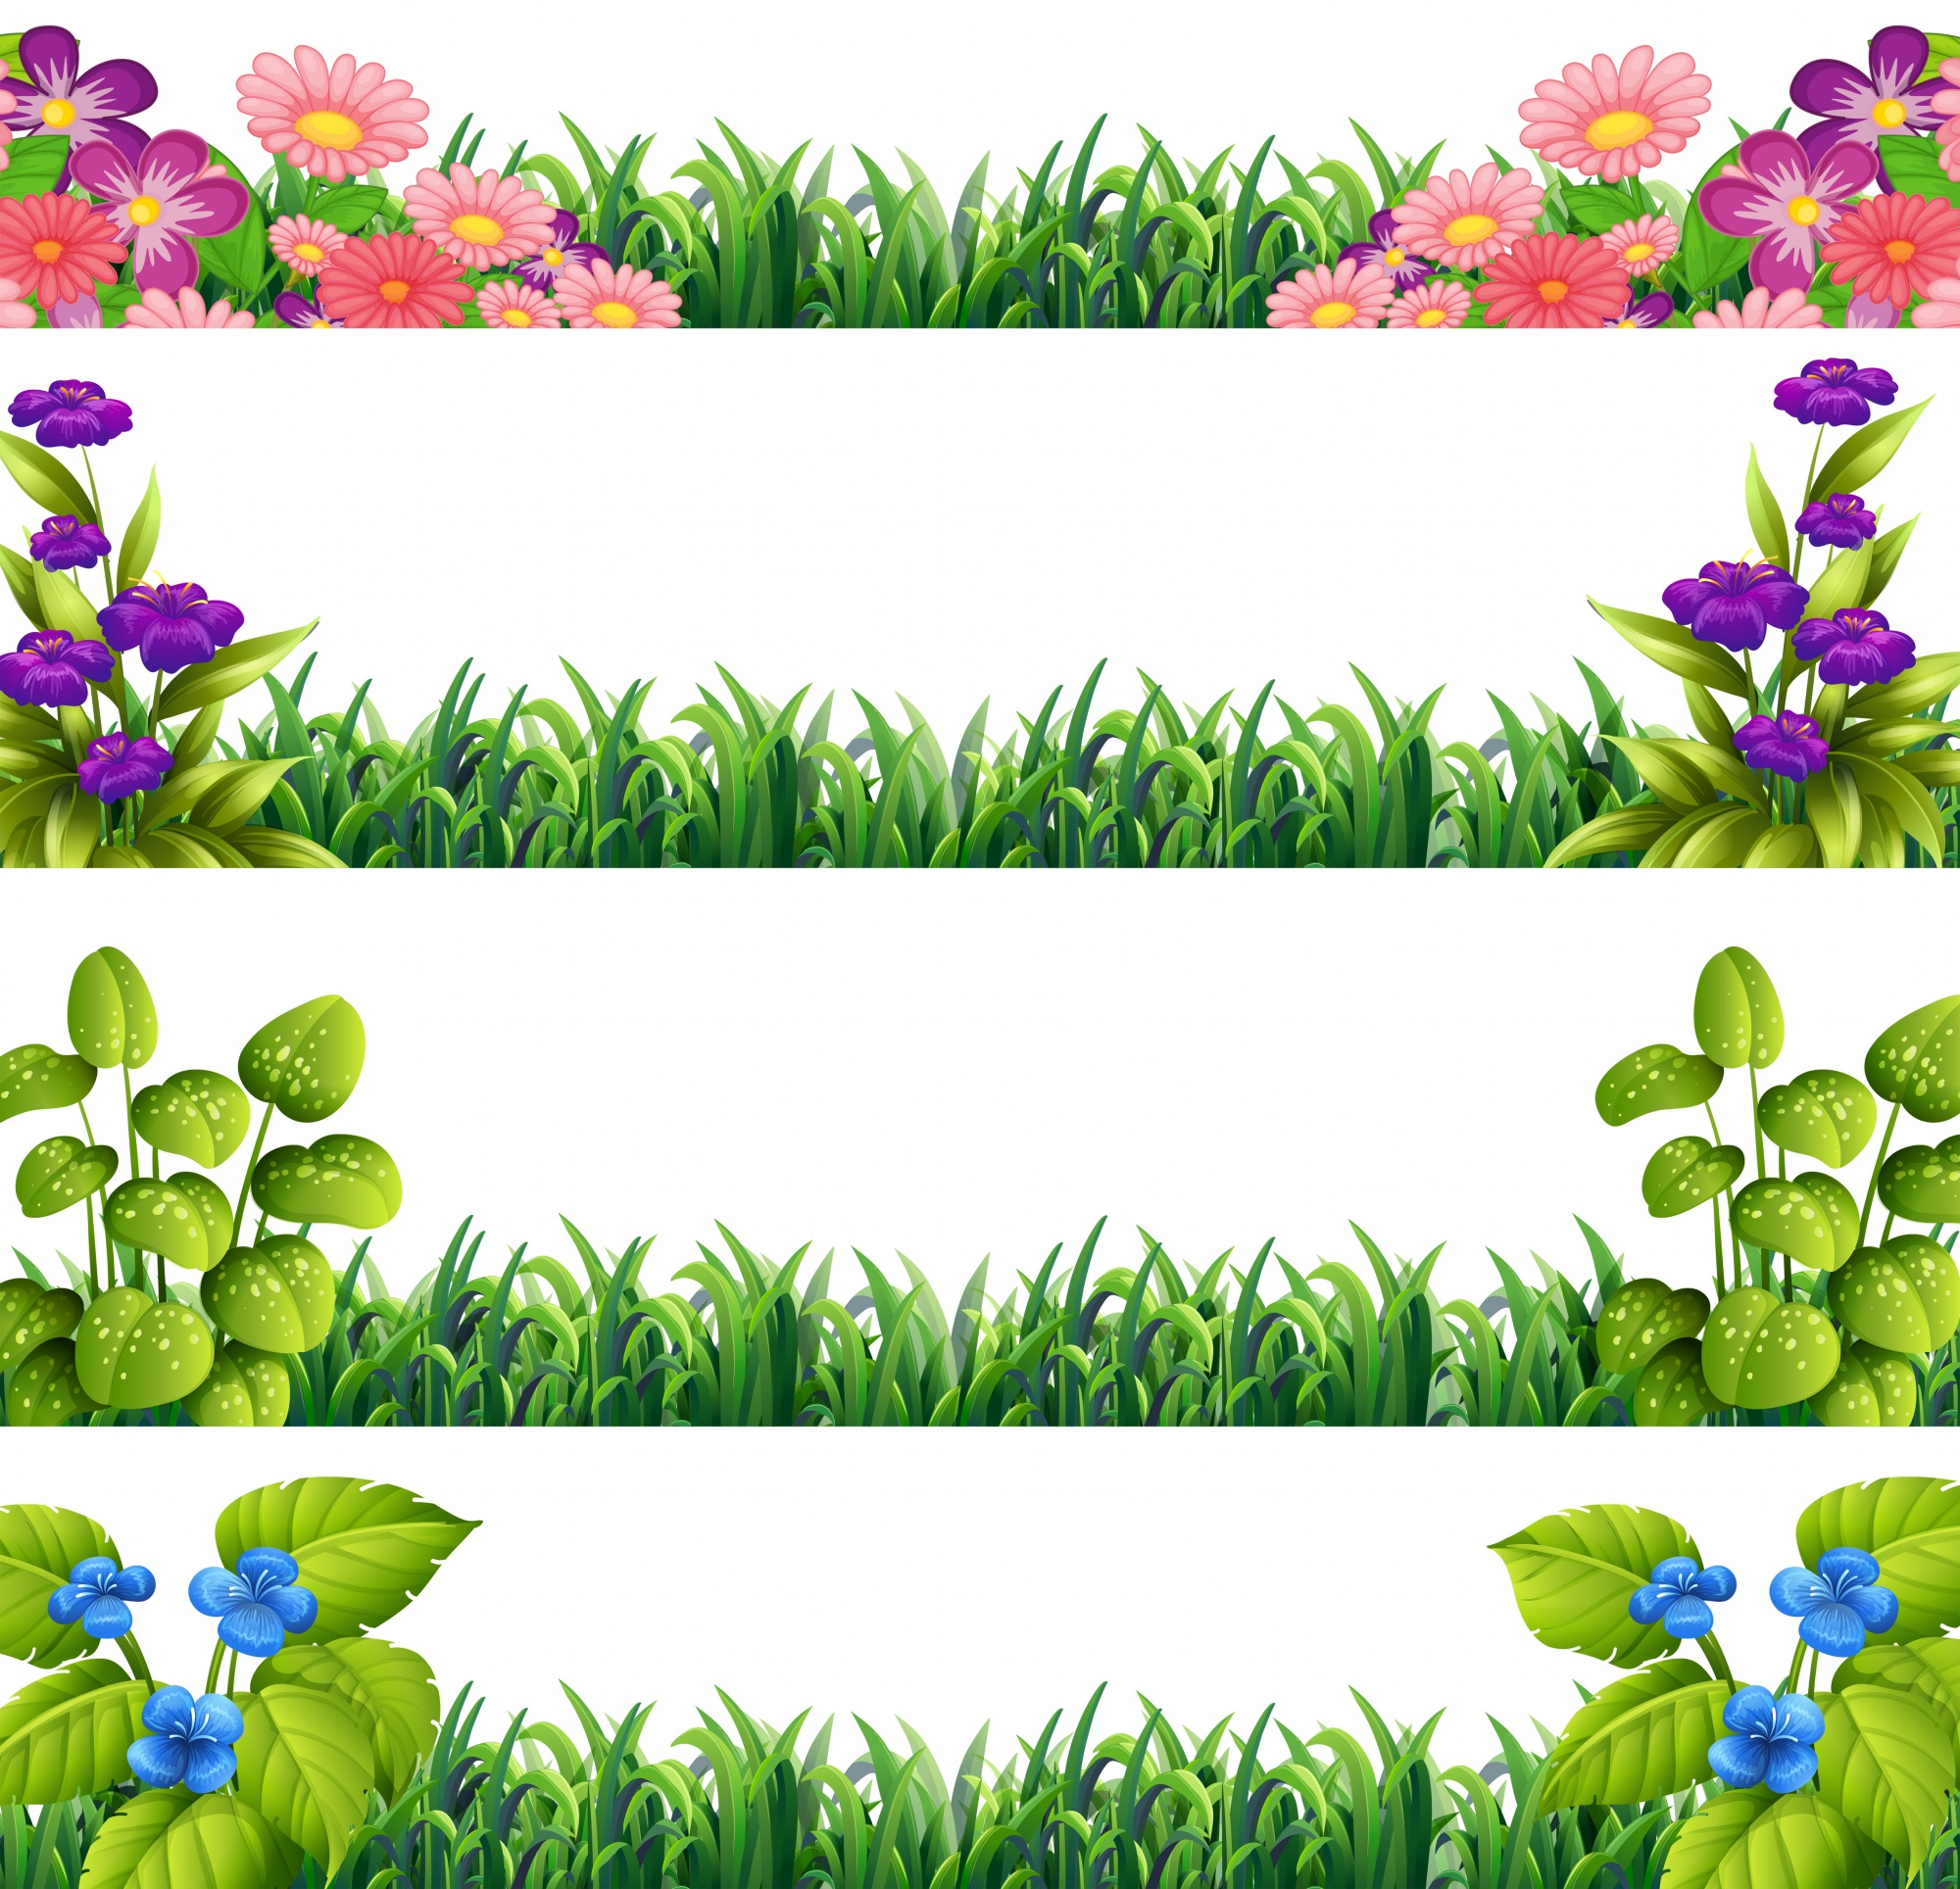 Illustration of different sings of flower decoration